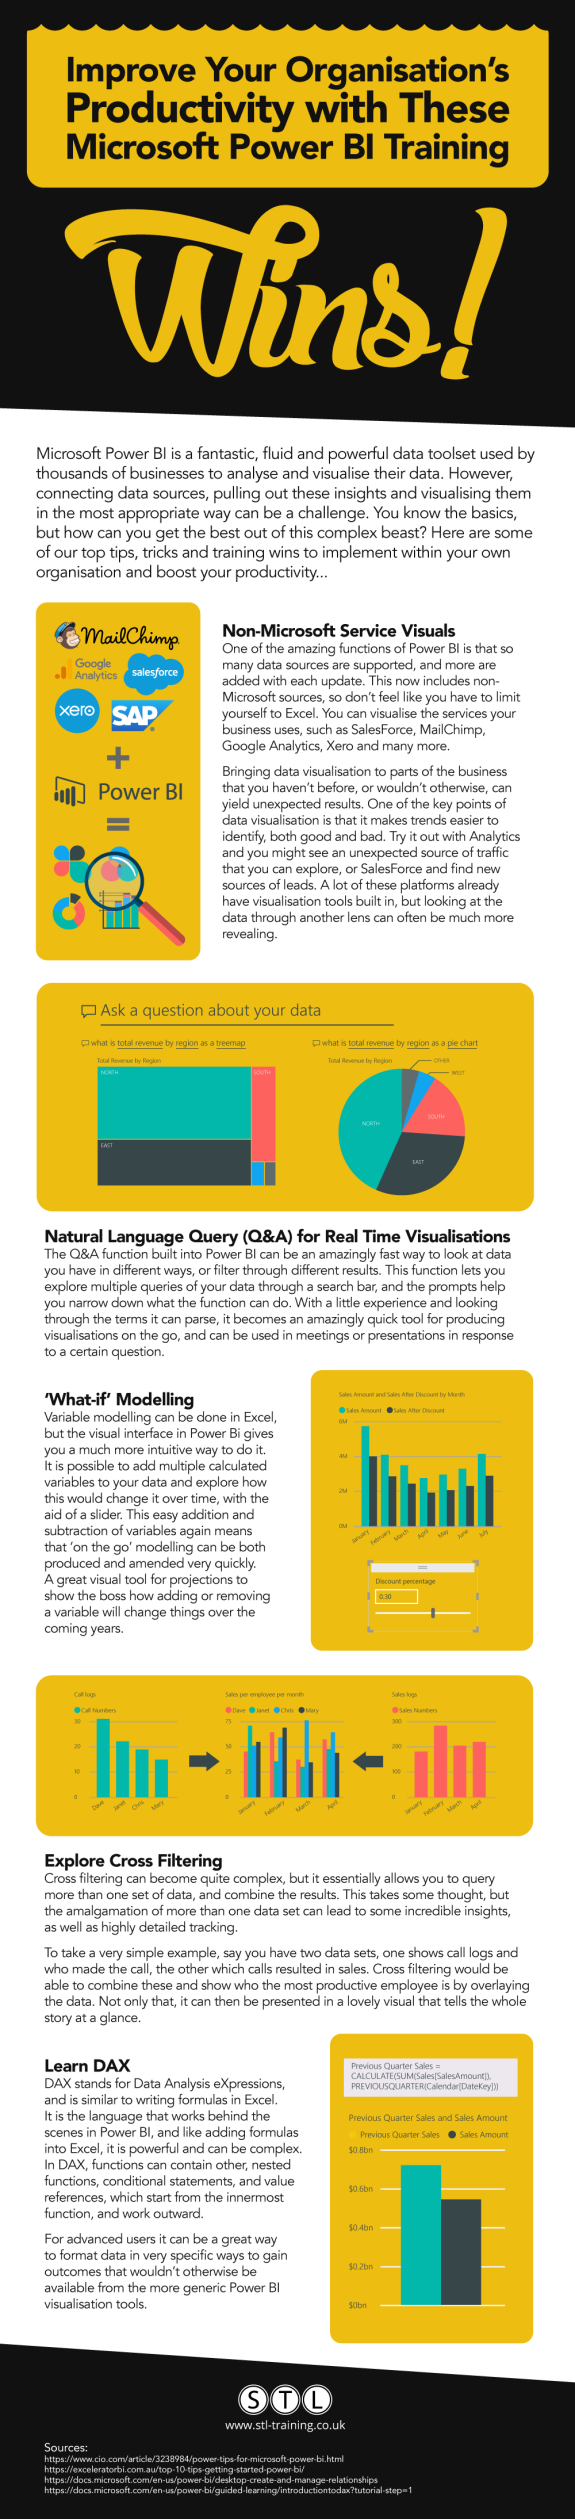 Improve Your Organisation's Productivity with These Microsoft Power BI Training Wins